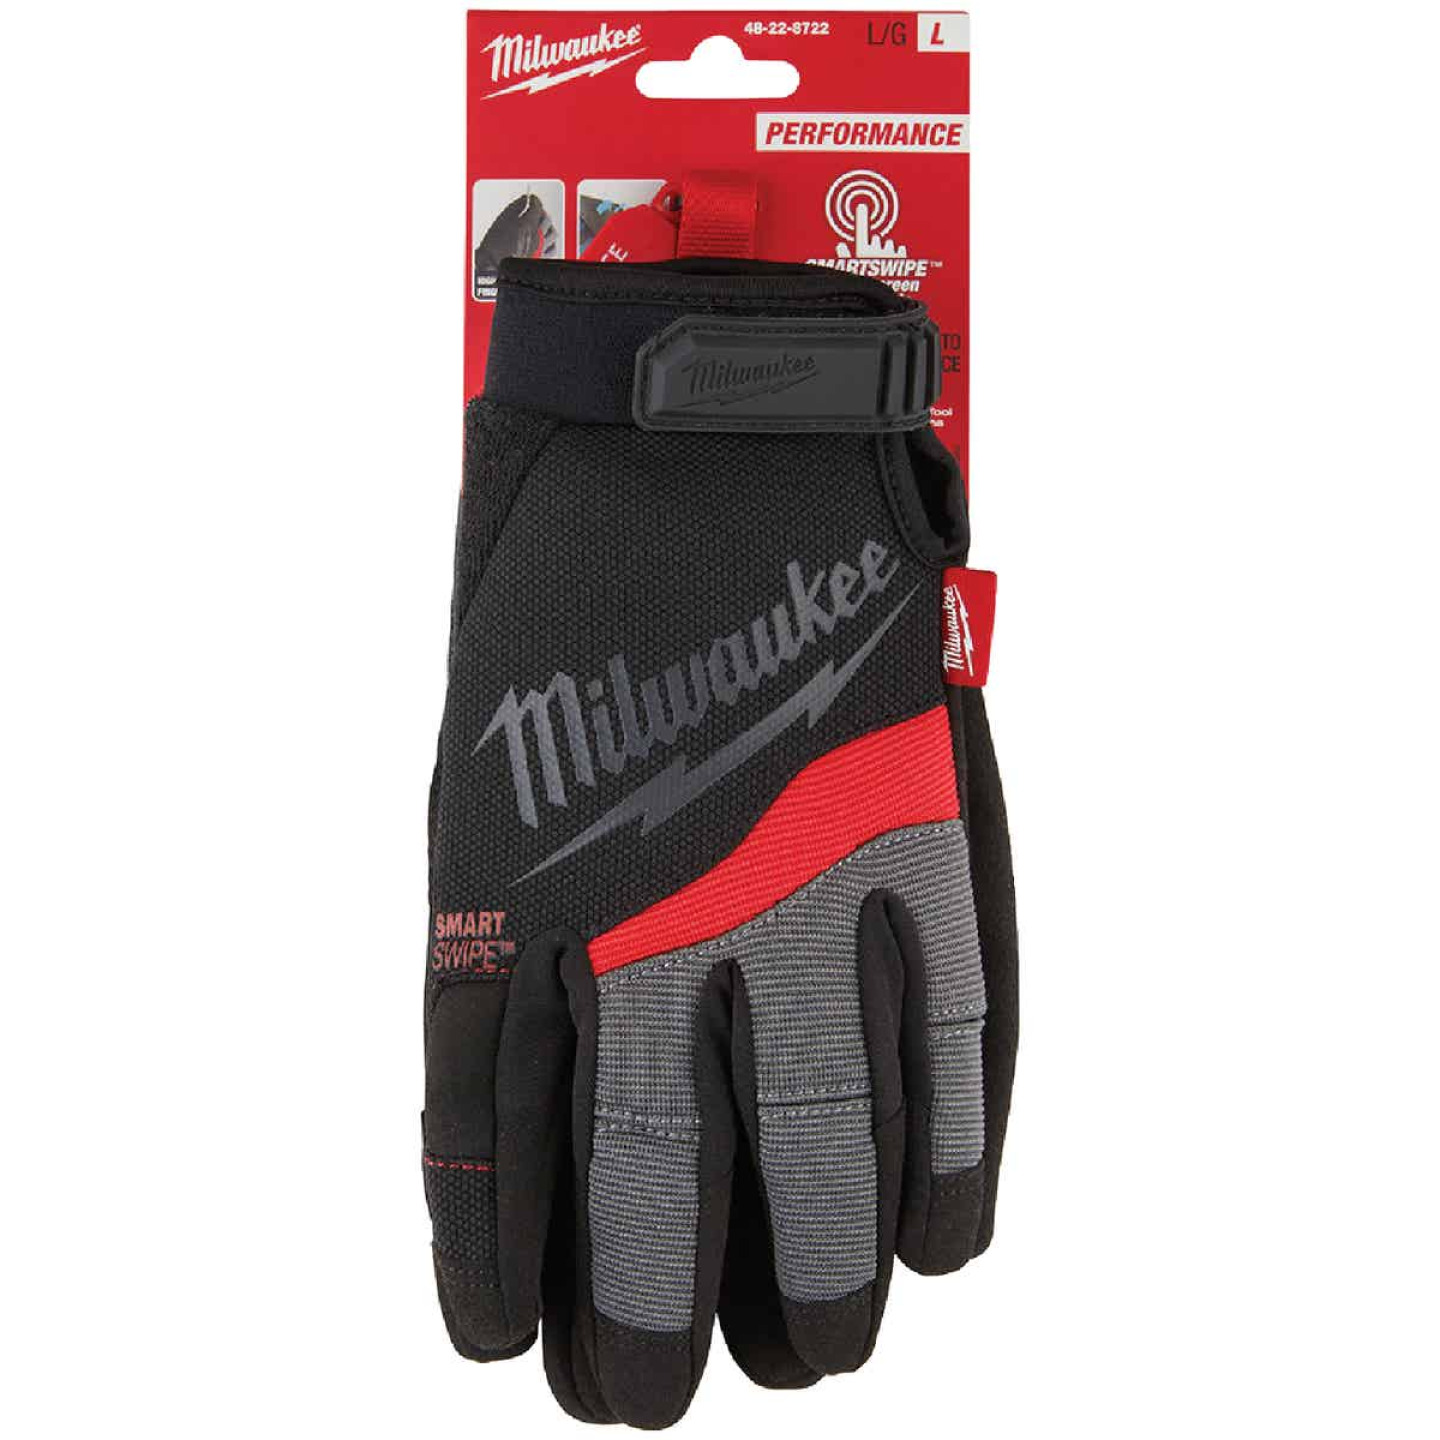 Milwaukee Performance Men's Medium Synthetic Work Glove Image 3